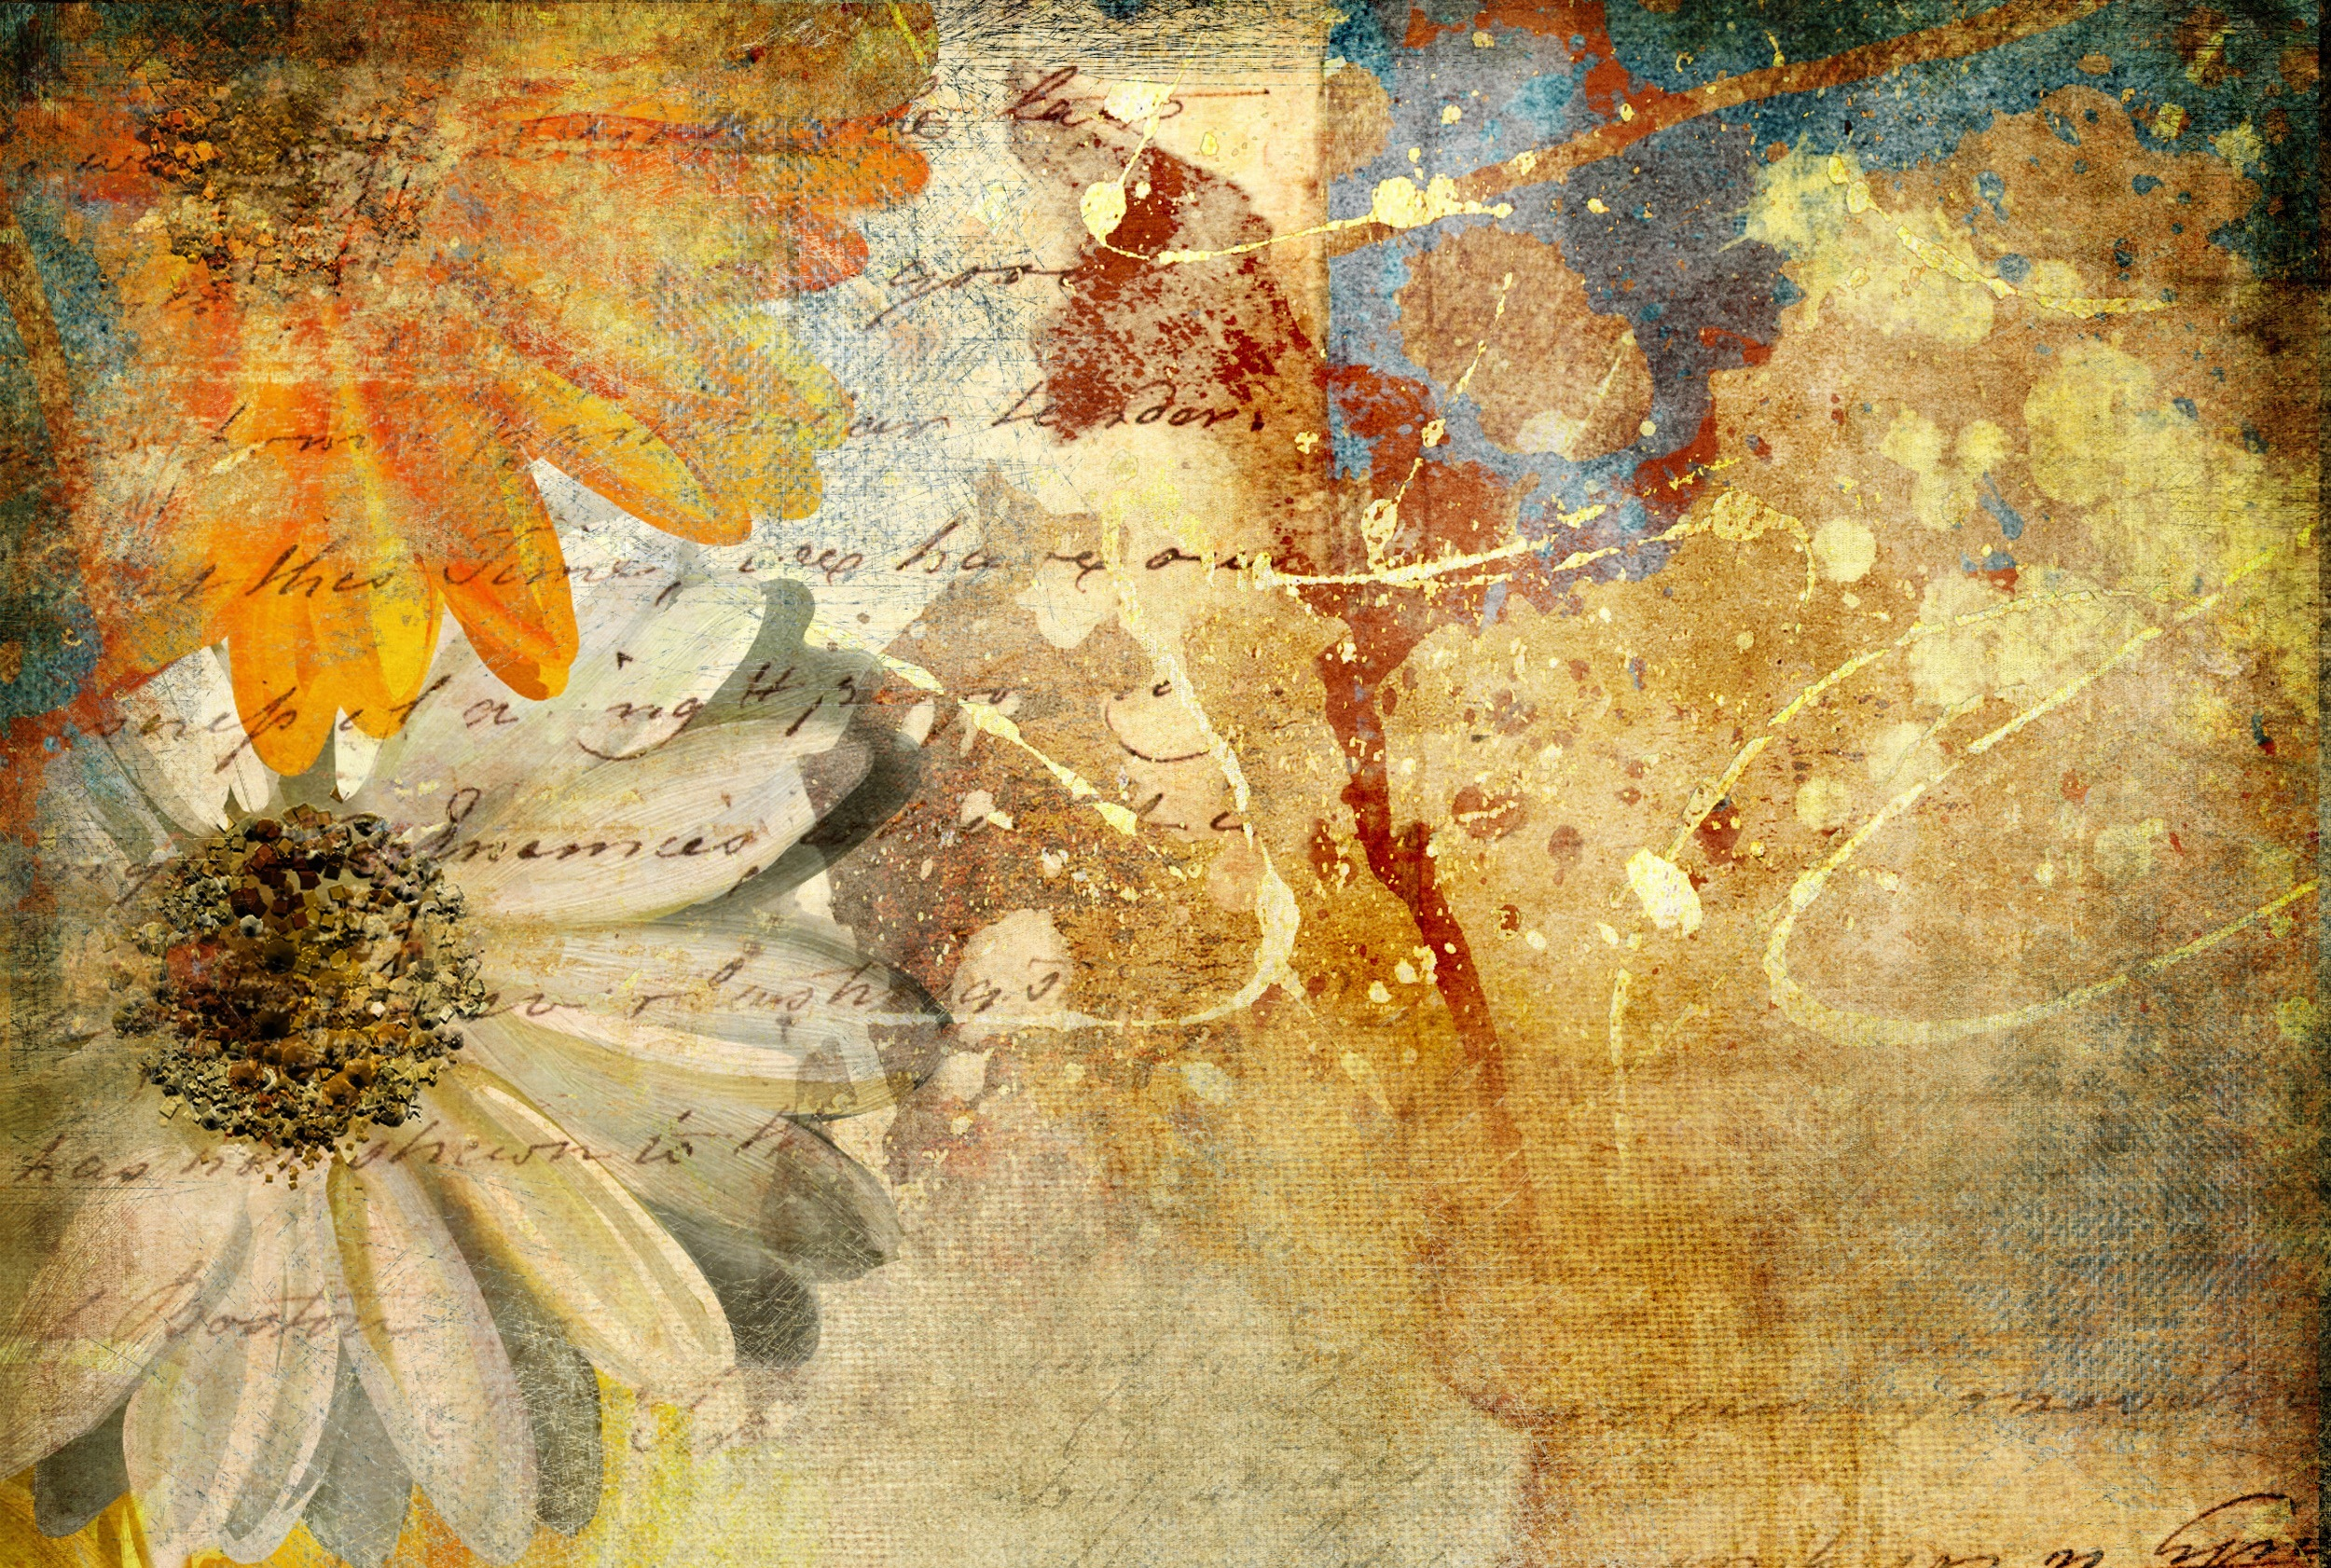 Fall Flowers Desk Background Wallpaper Antique Images Free Download Pixelstalk Net